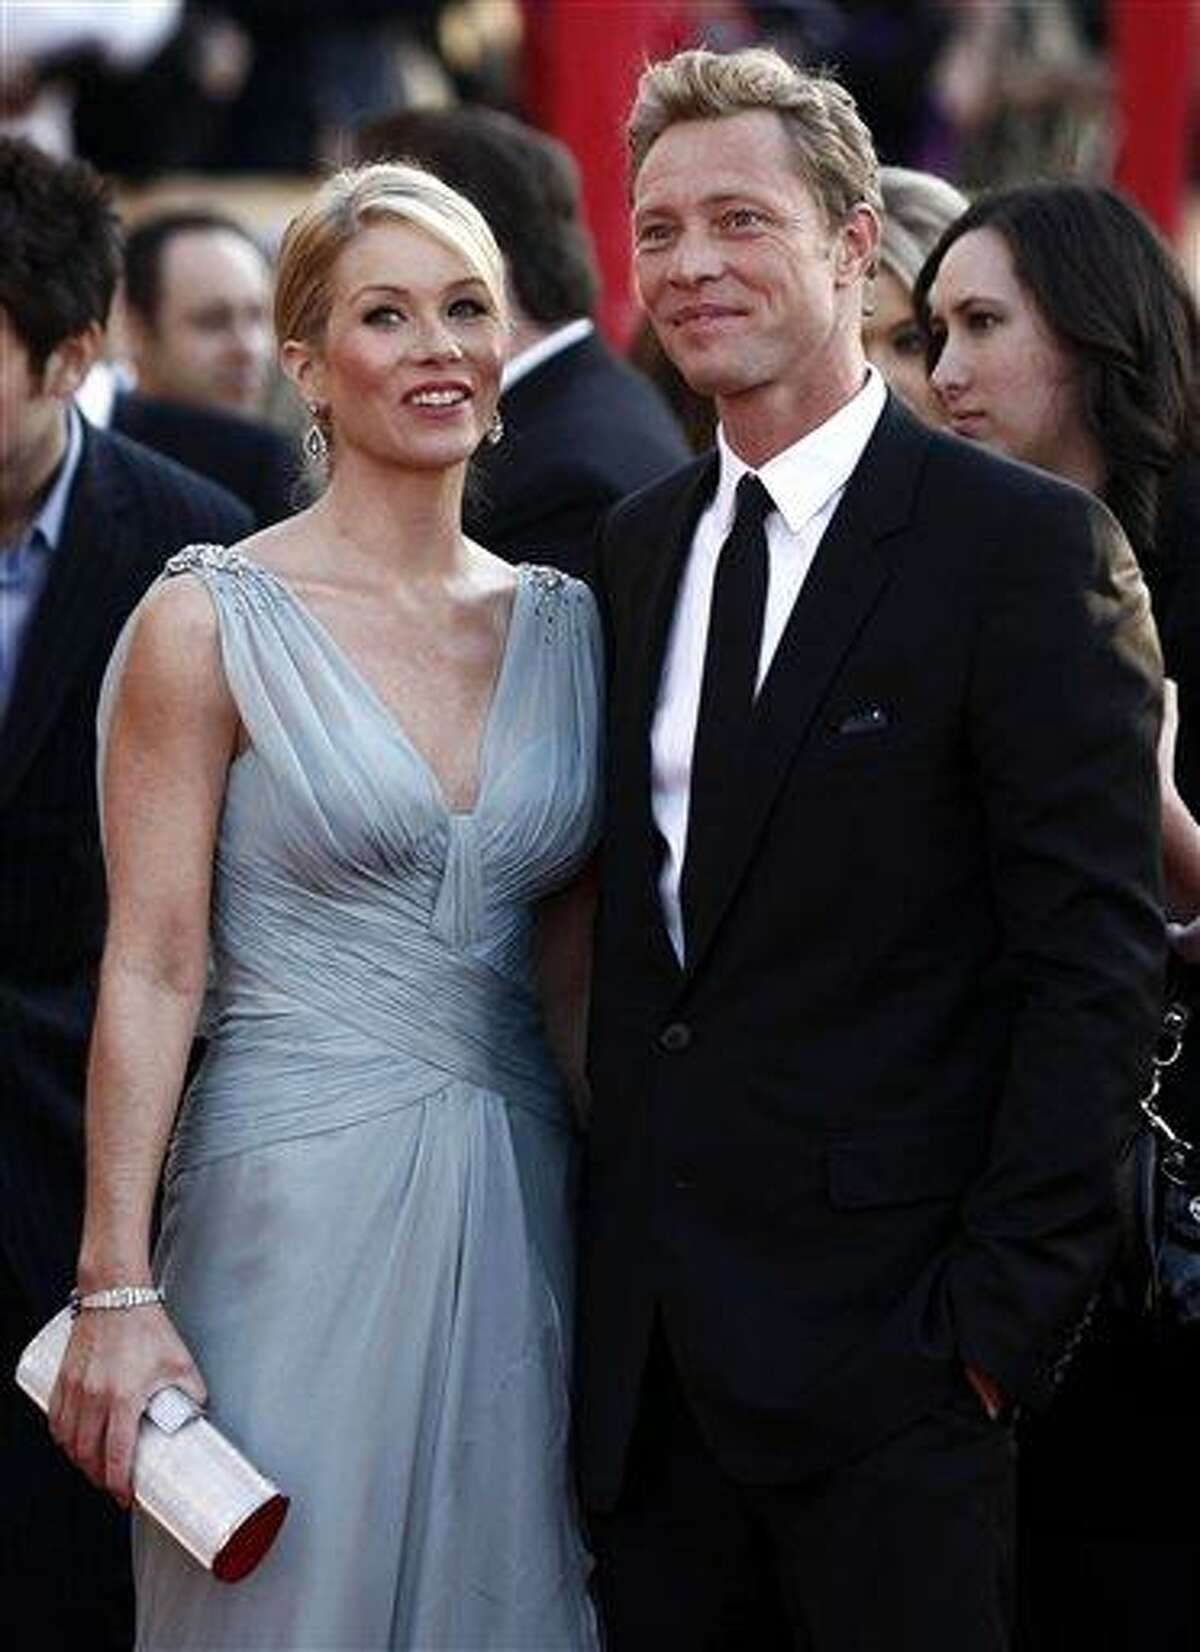 In this Jan. 23, 2010 file photo, Christina Applegate, left, and Martyn Lenoble arrive at the 16th Annual Screen Actors Guild Awards in Los Angeles.